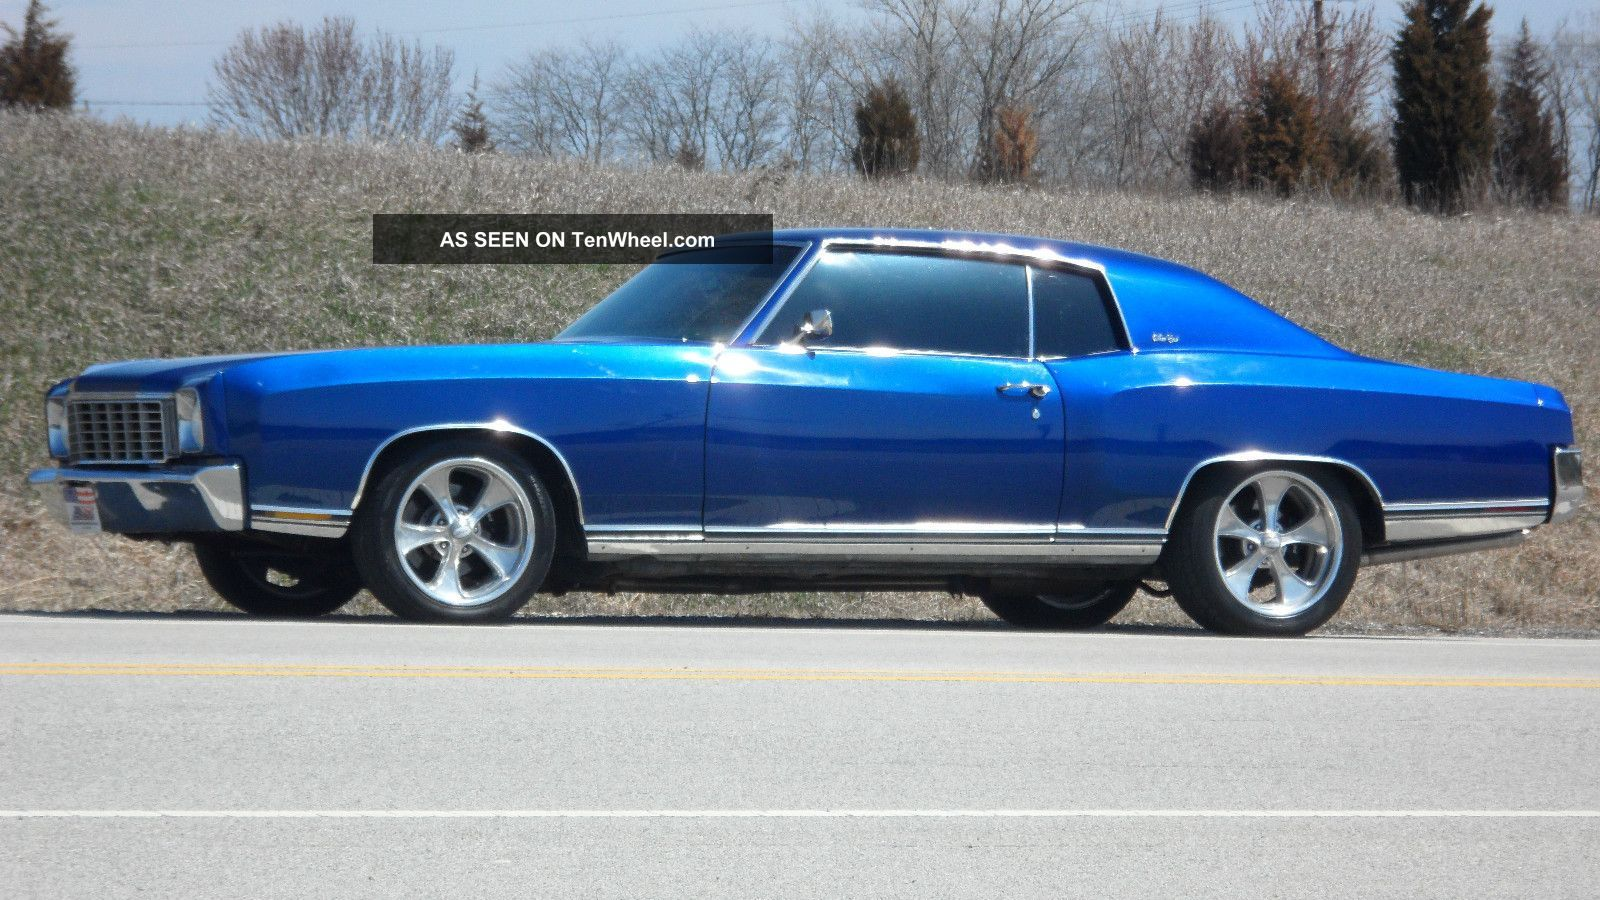 1970 CHEVROLET MONTE CARLO//SS OWNER/'S MANUAL